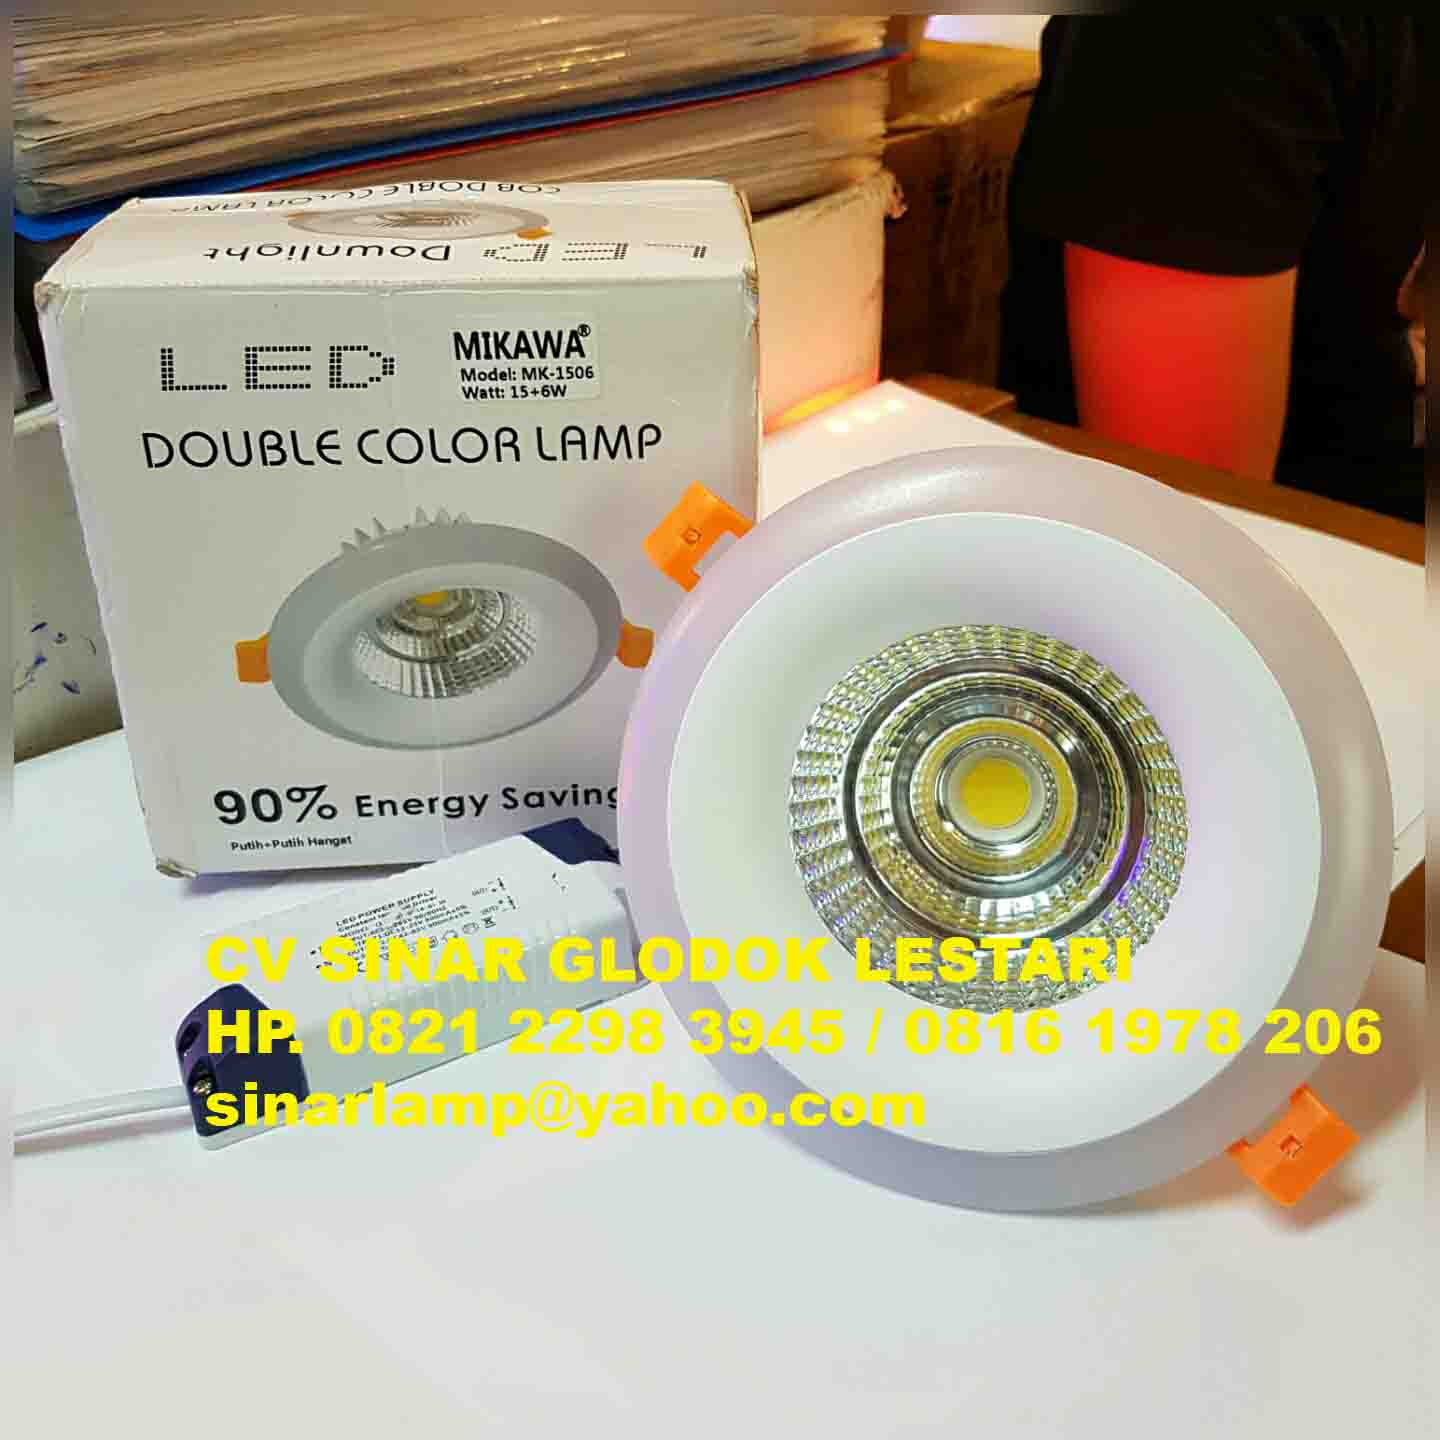 Downlight LED Double Color Lamp 15+6W Mikawa